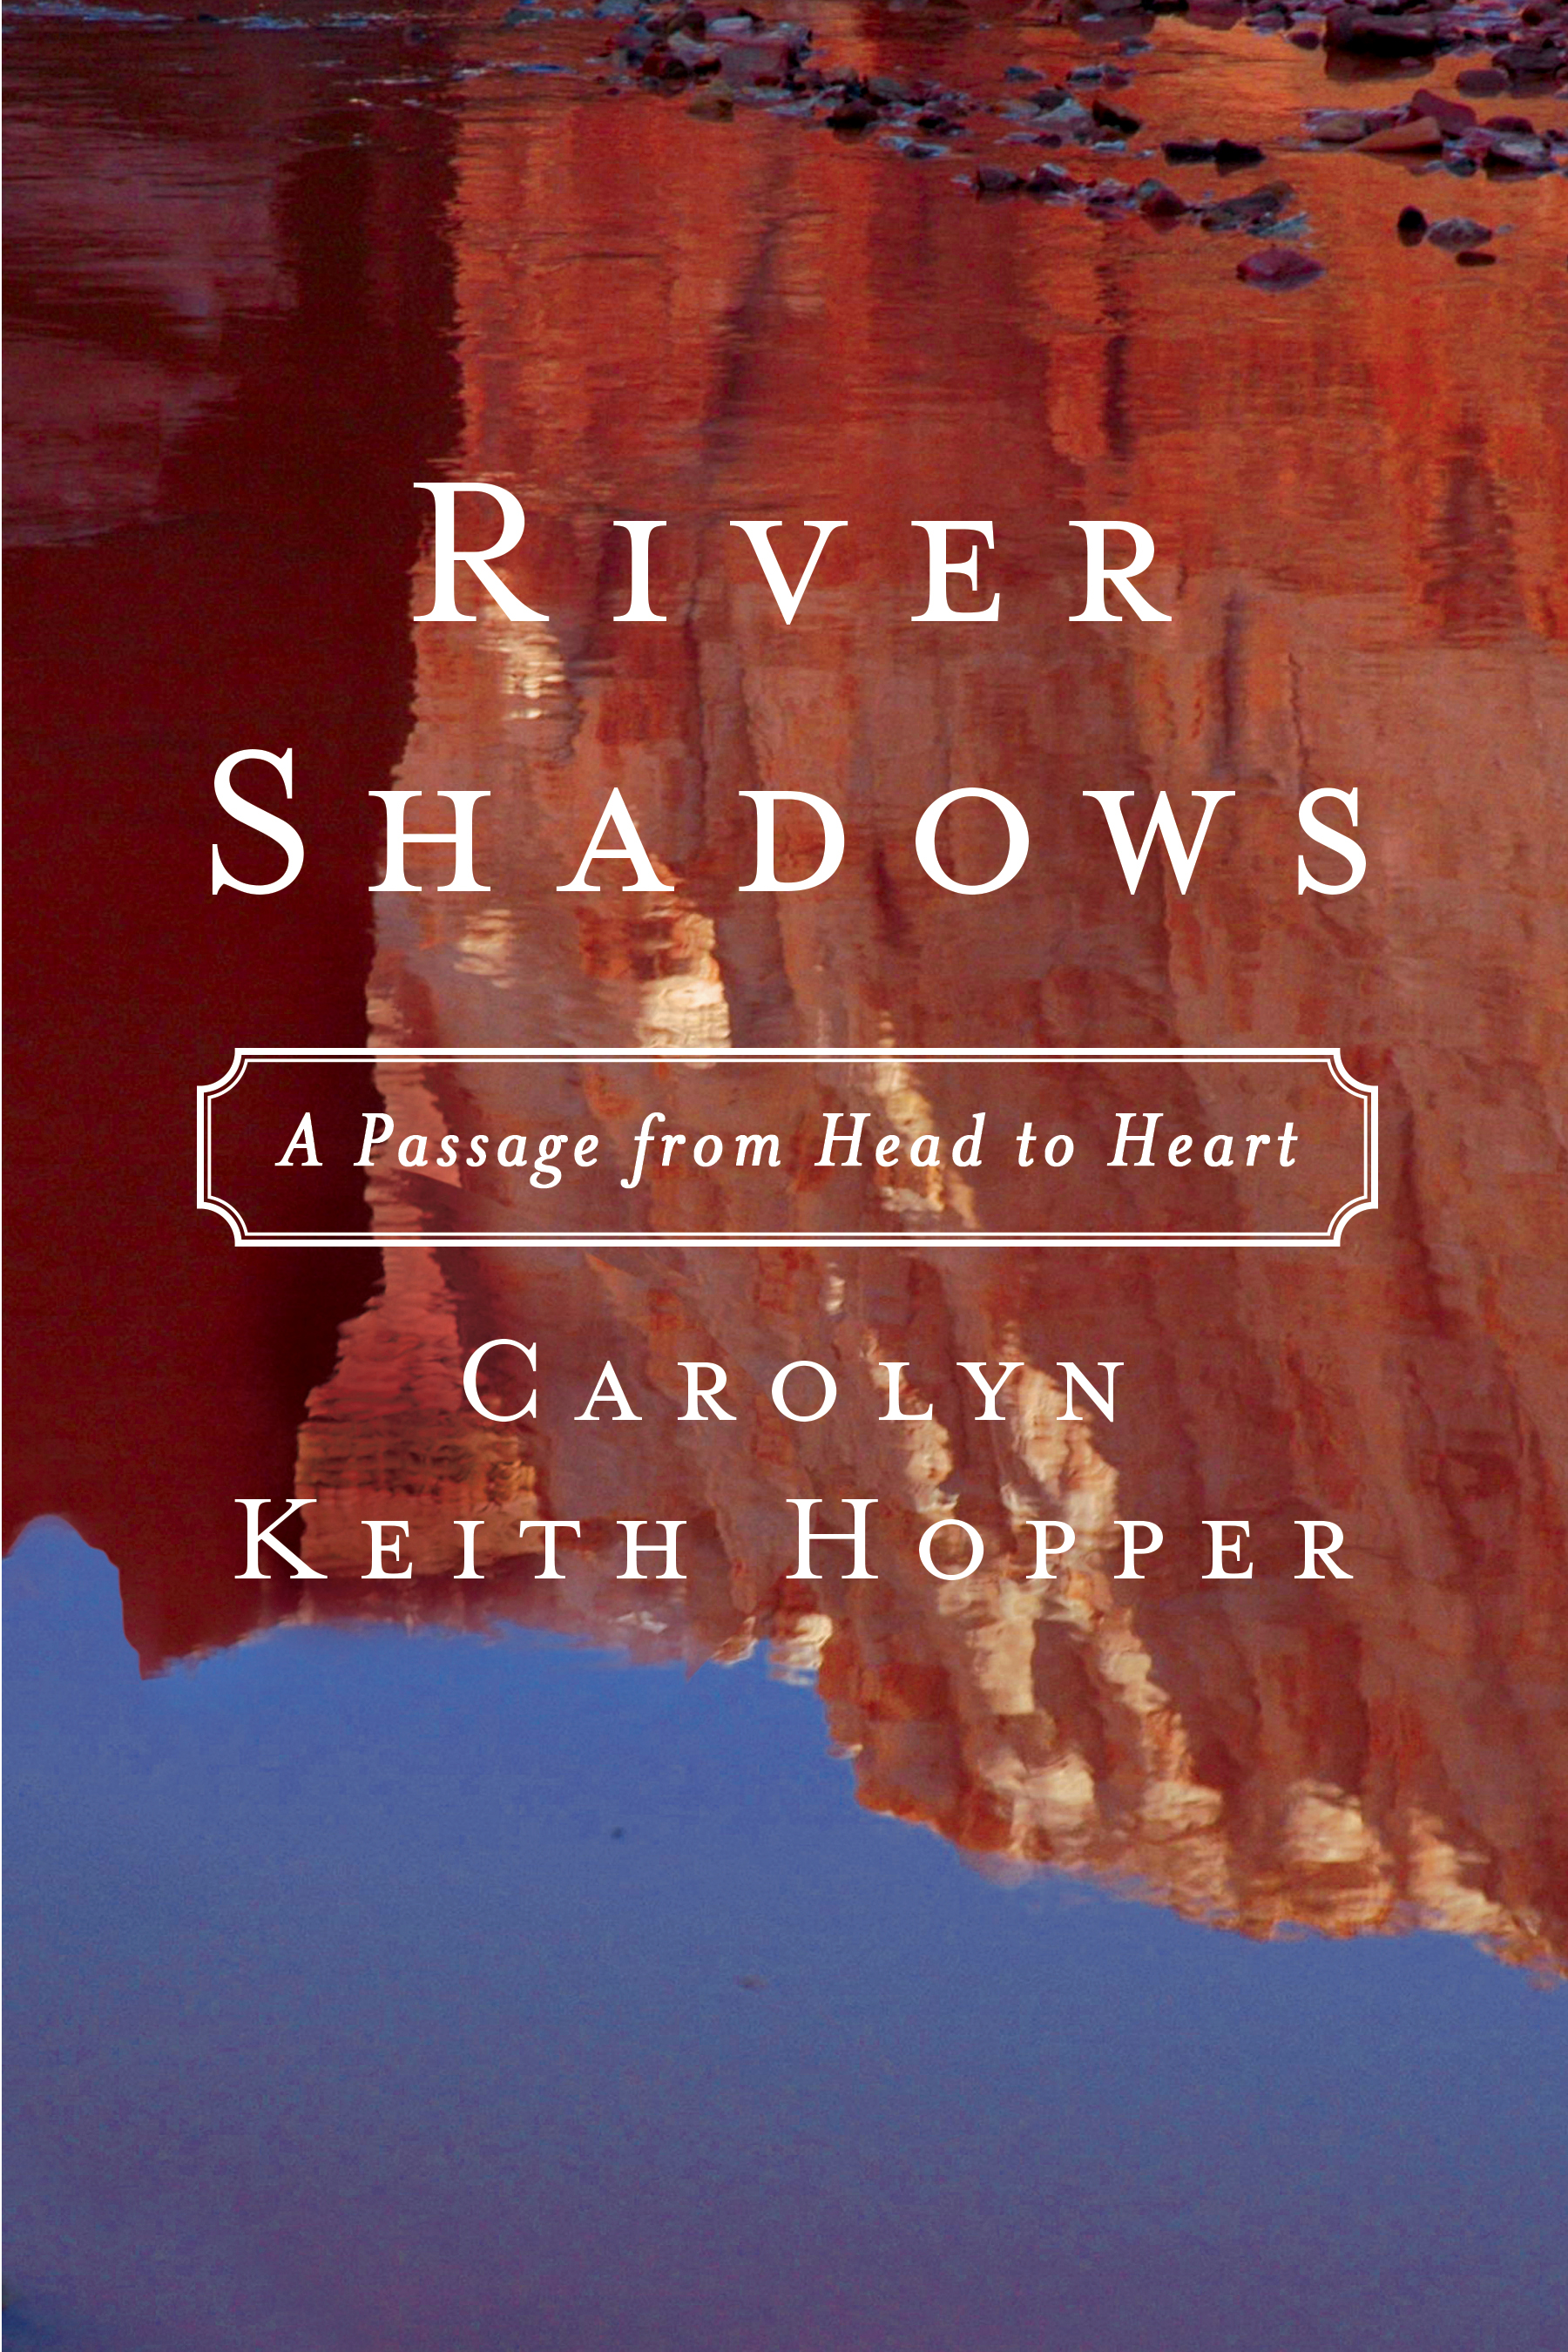 River Shadows book cover